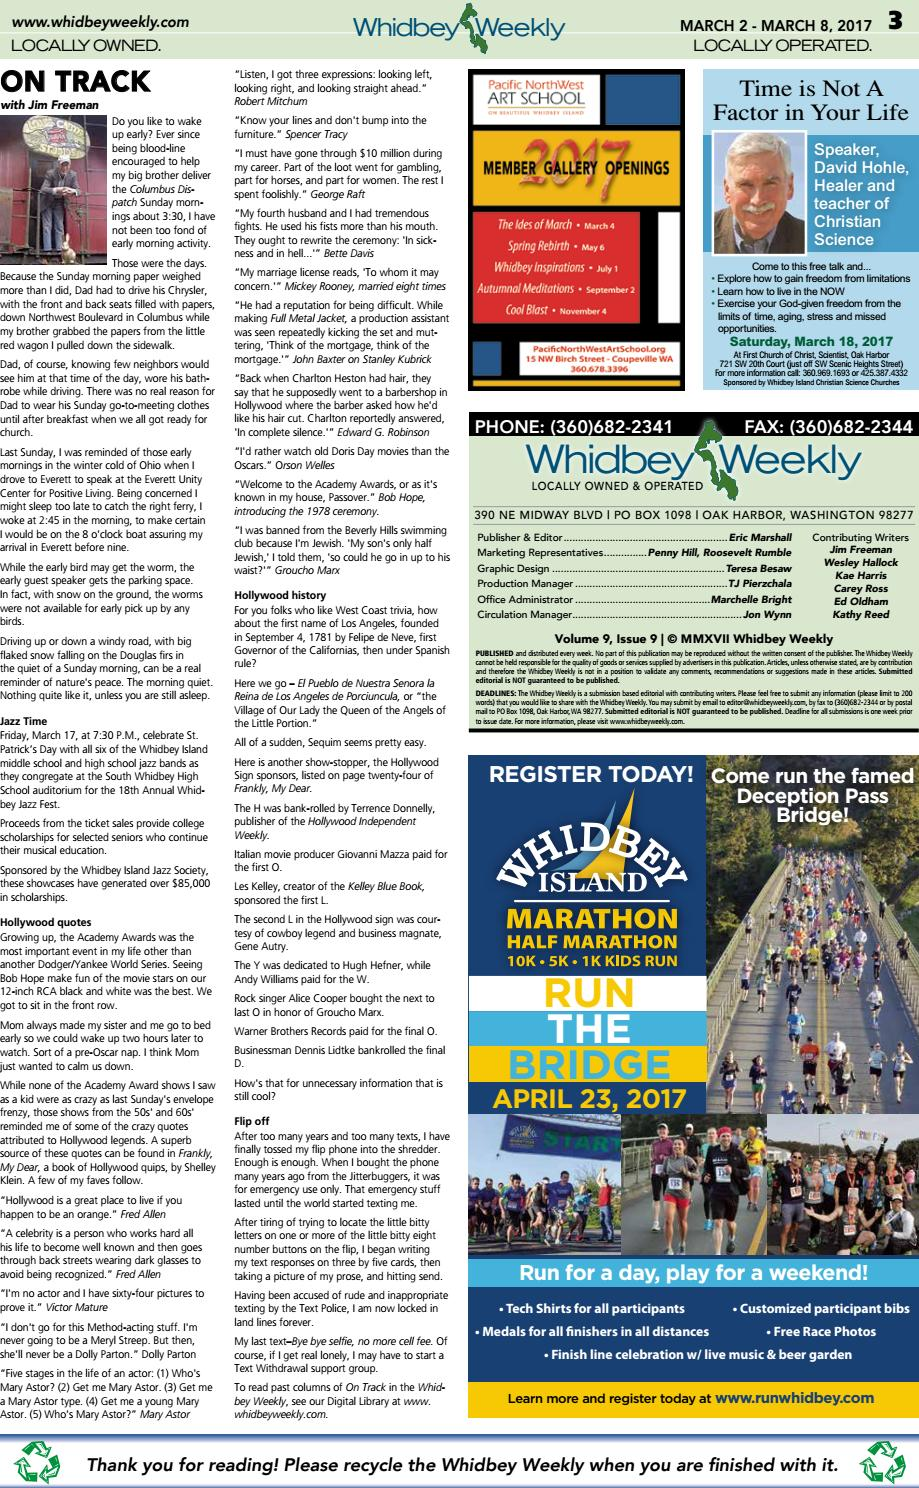 Whidbey Weekly, March 2, 2017 by WhidbeyWeekly com - issuu